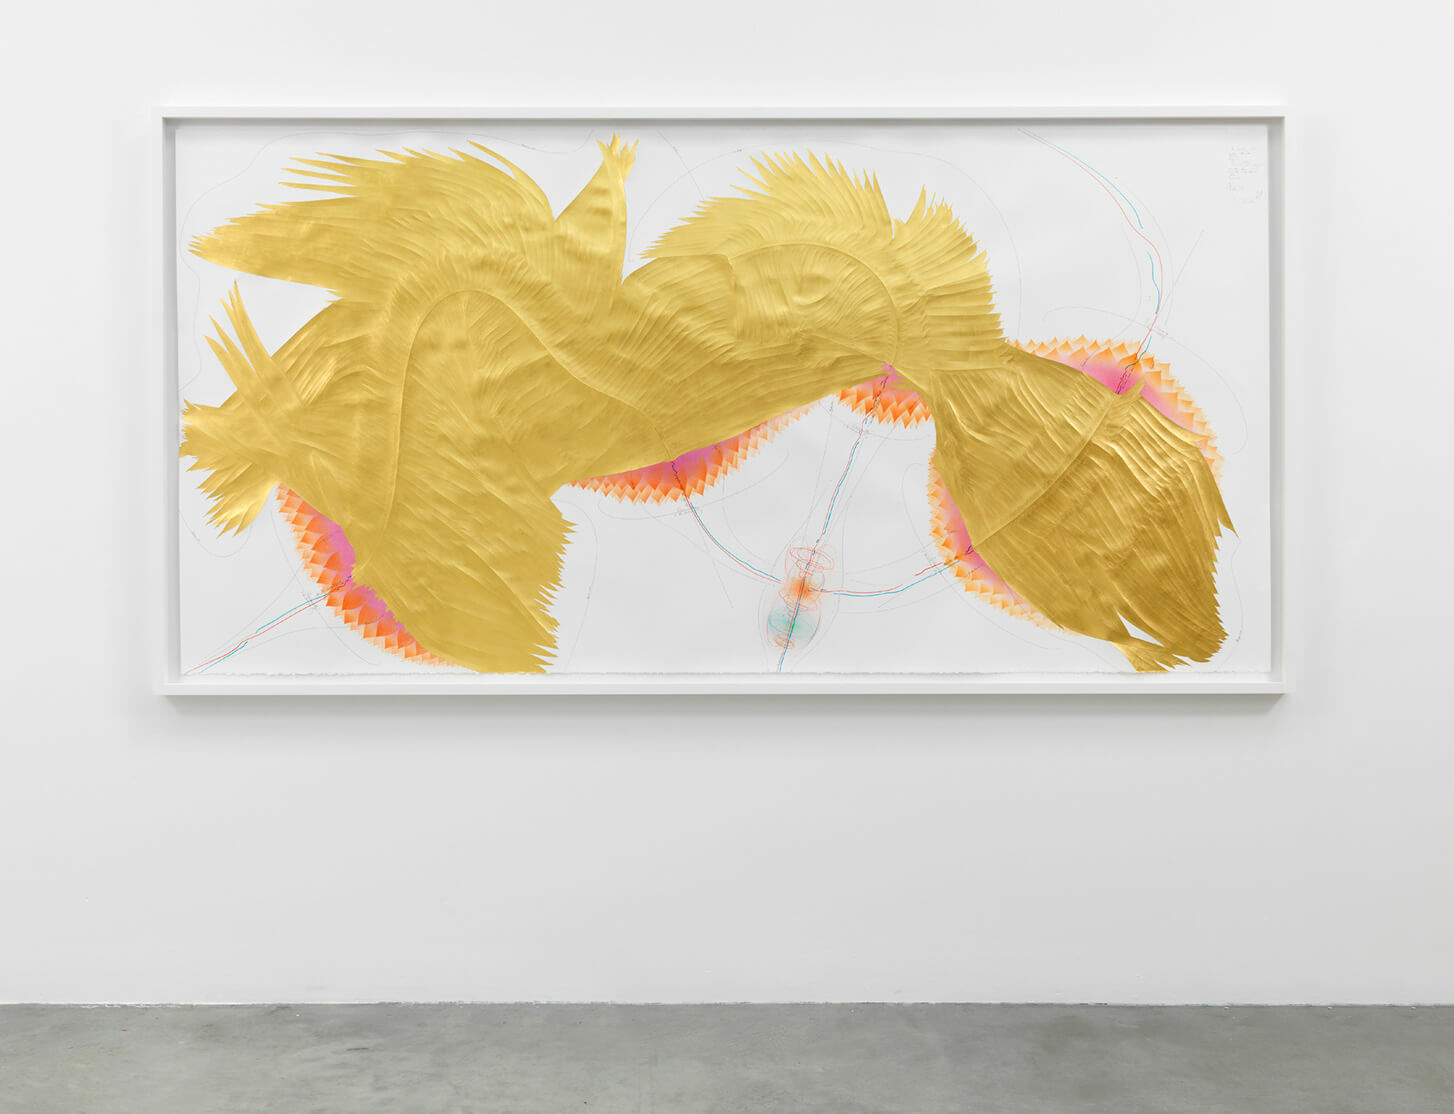 Jorinde Voigt presents recent work at MAO Space in Shanghai